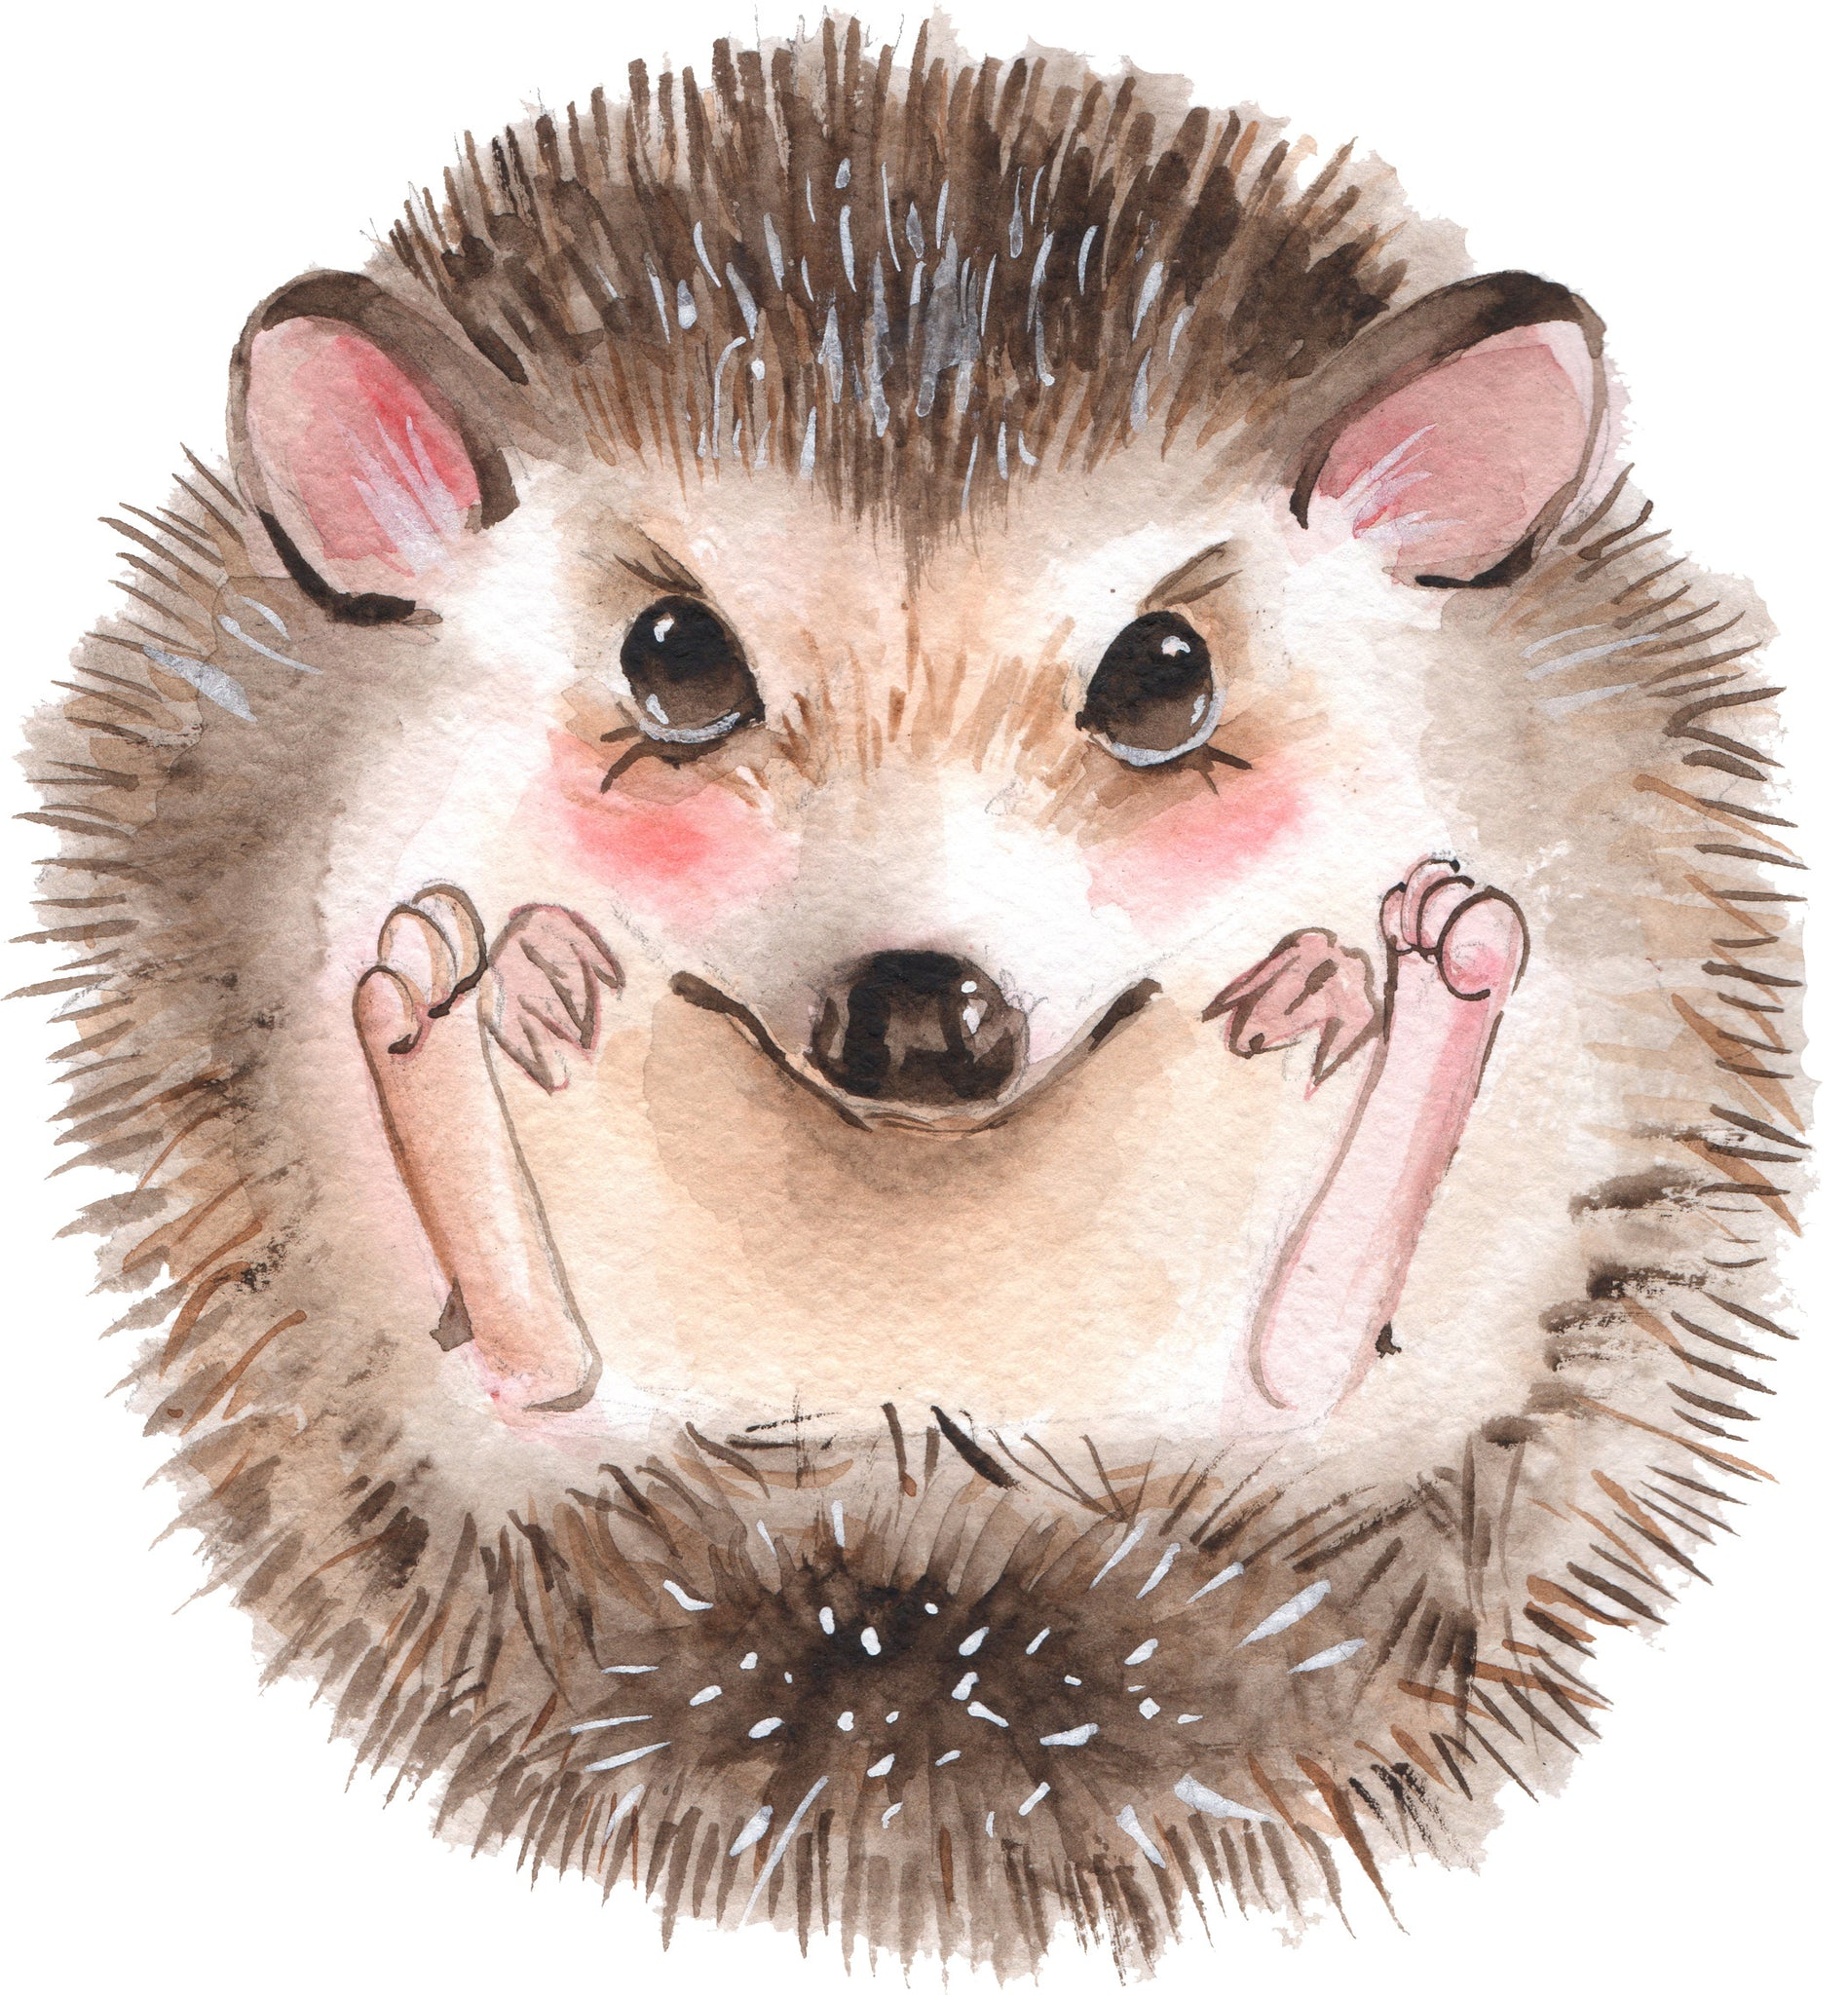 Adorable Happy Watercolor Art Curled Hedgehog Vinyl Decal Sticker